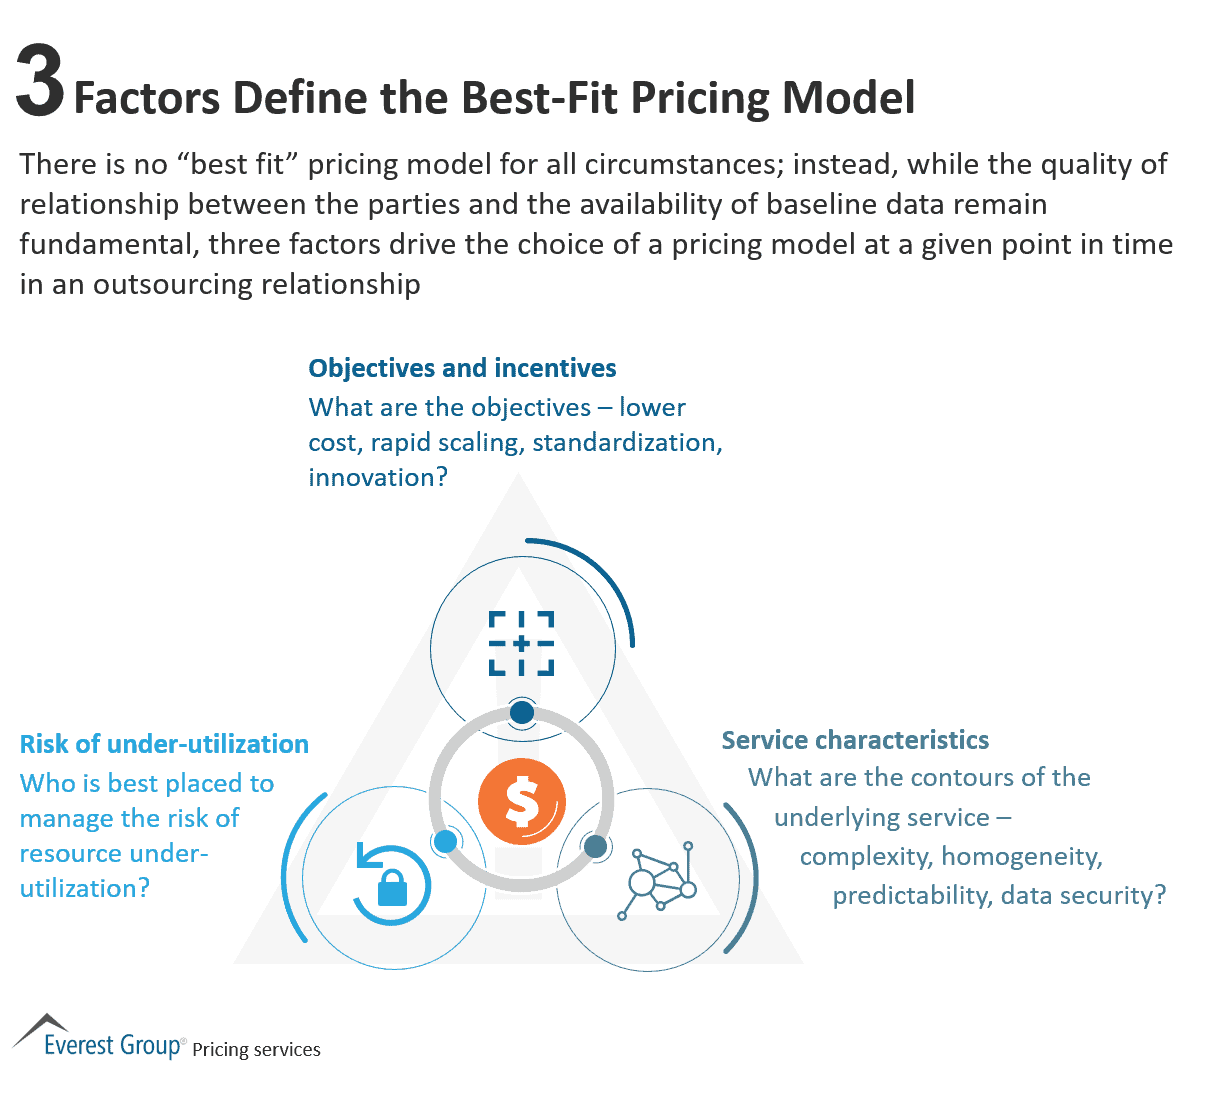 3 Factors Define the Best-Fit Pricing Model